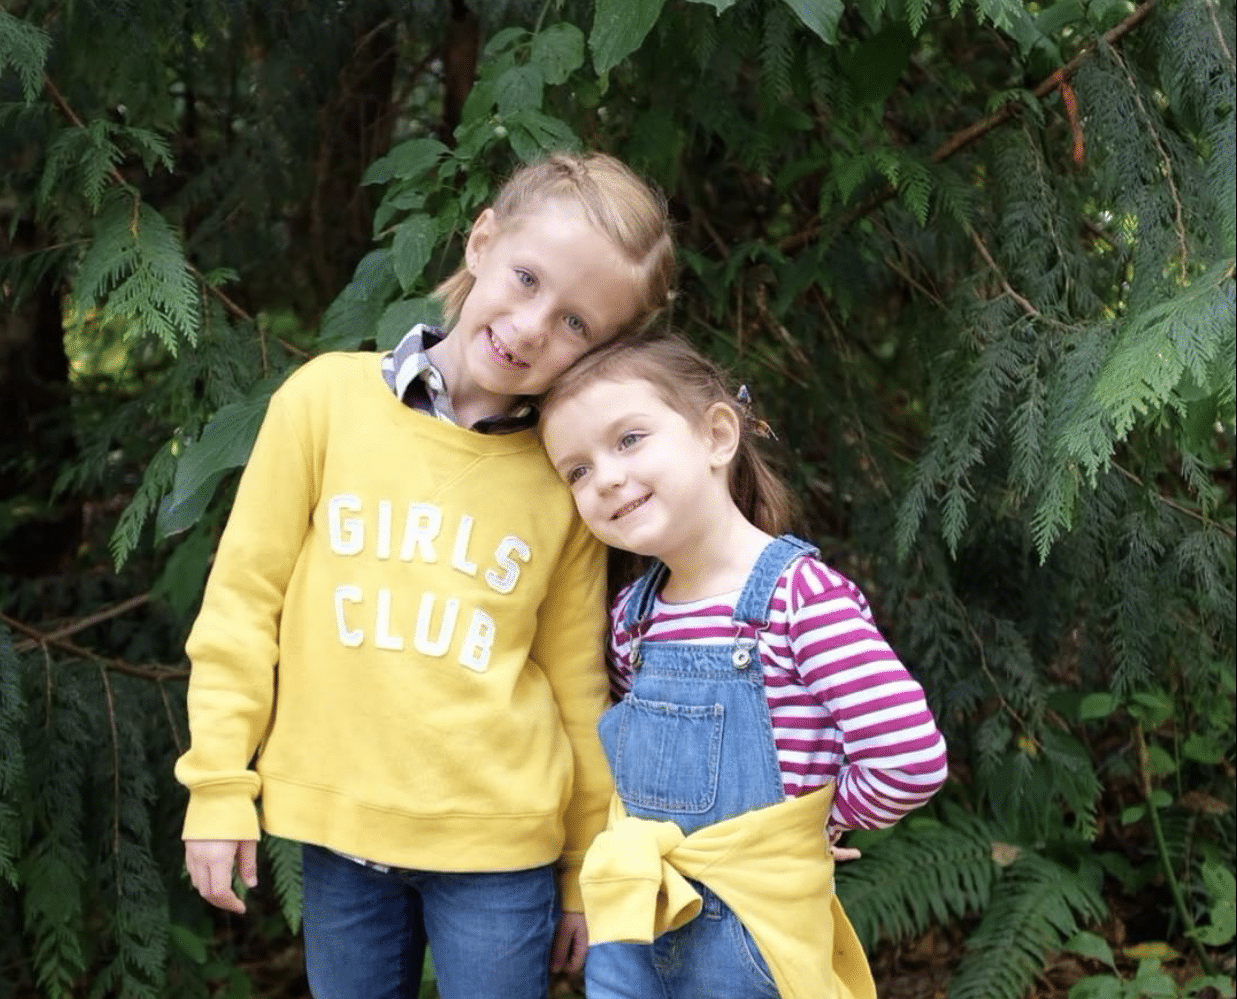 a784c125df Great Fall Outfits from Target   Old Navy for Girls - The Chirping Moms